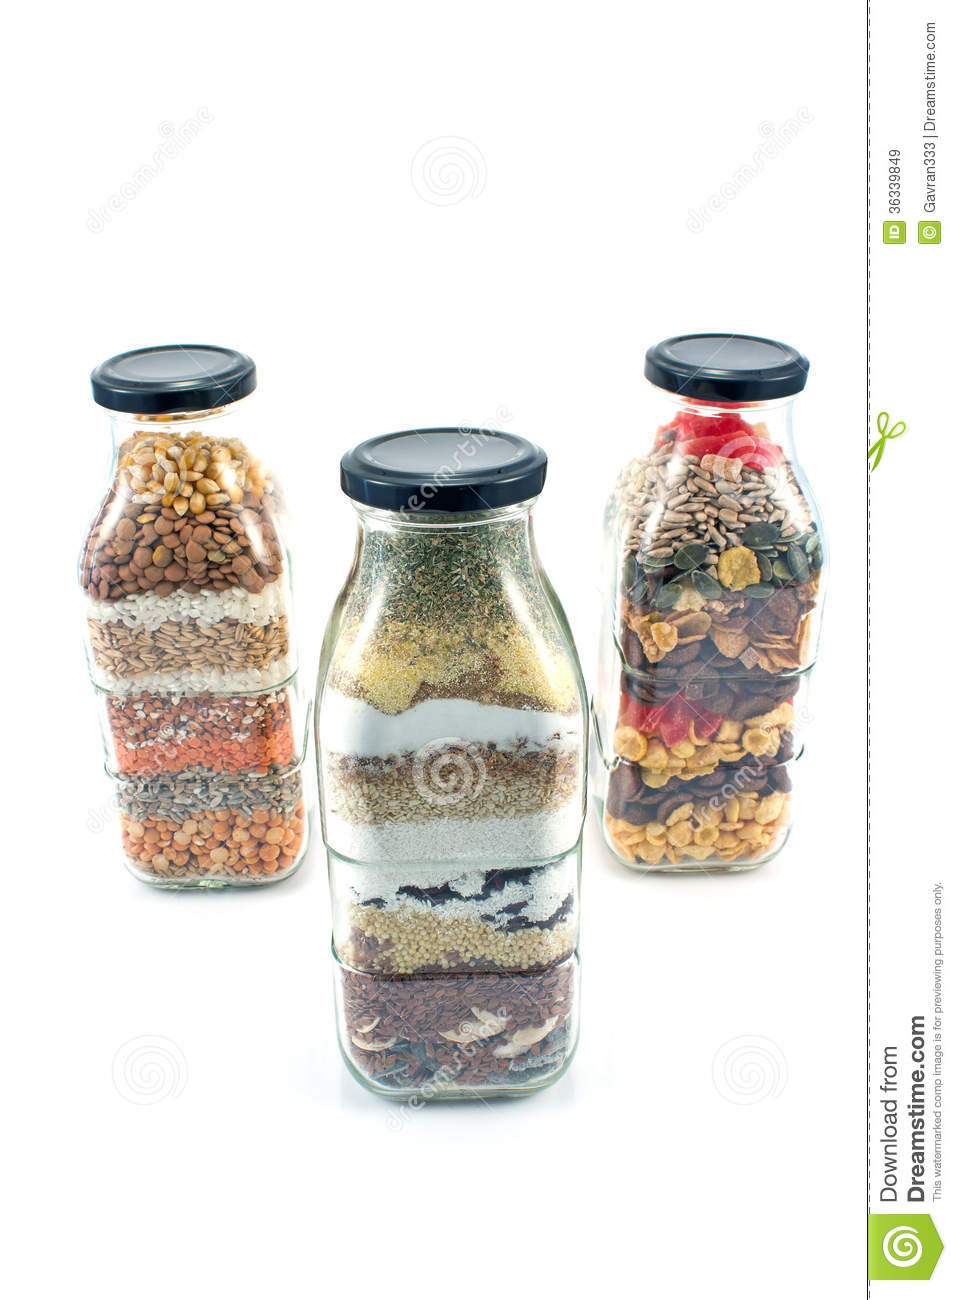 Decorative Glass Bottles With Seeds Stock Image Image Of